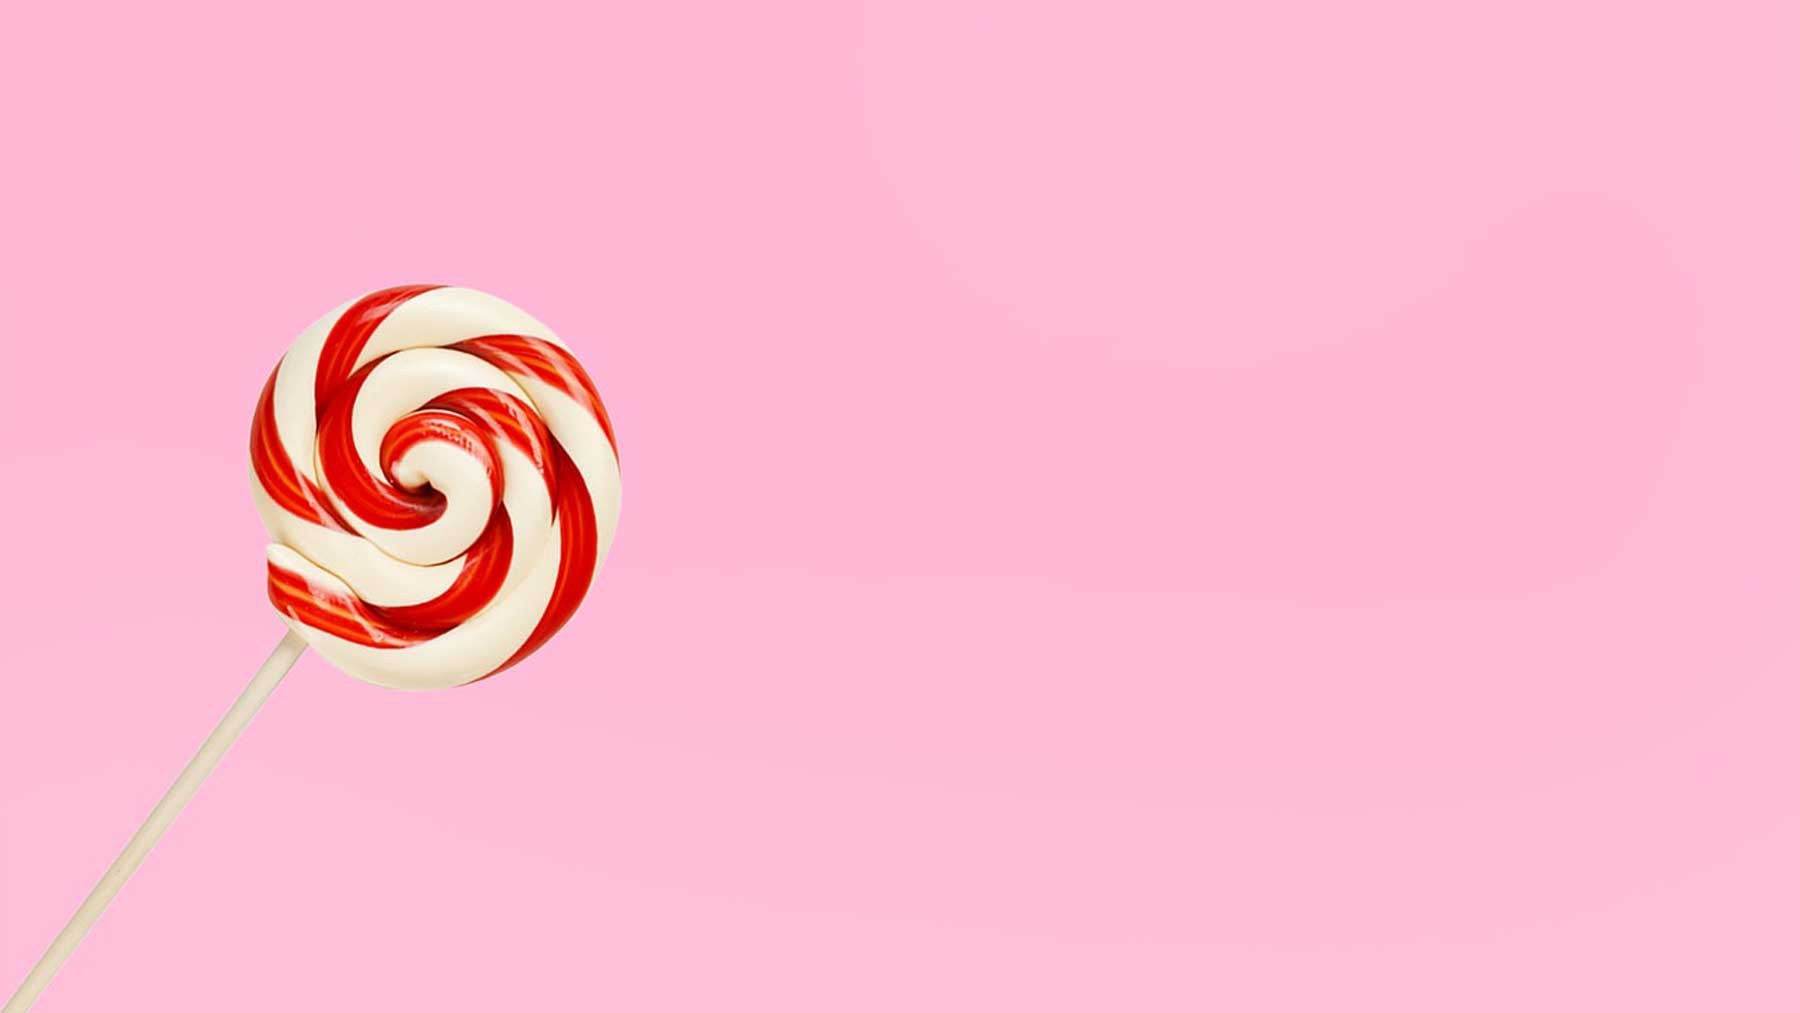 red and white swirly candy cane against pink background to represent sugar